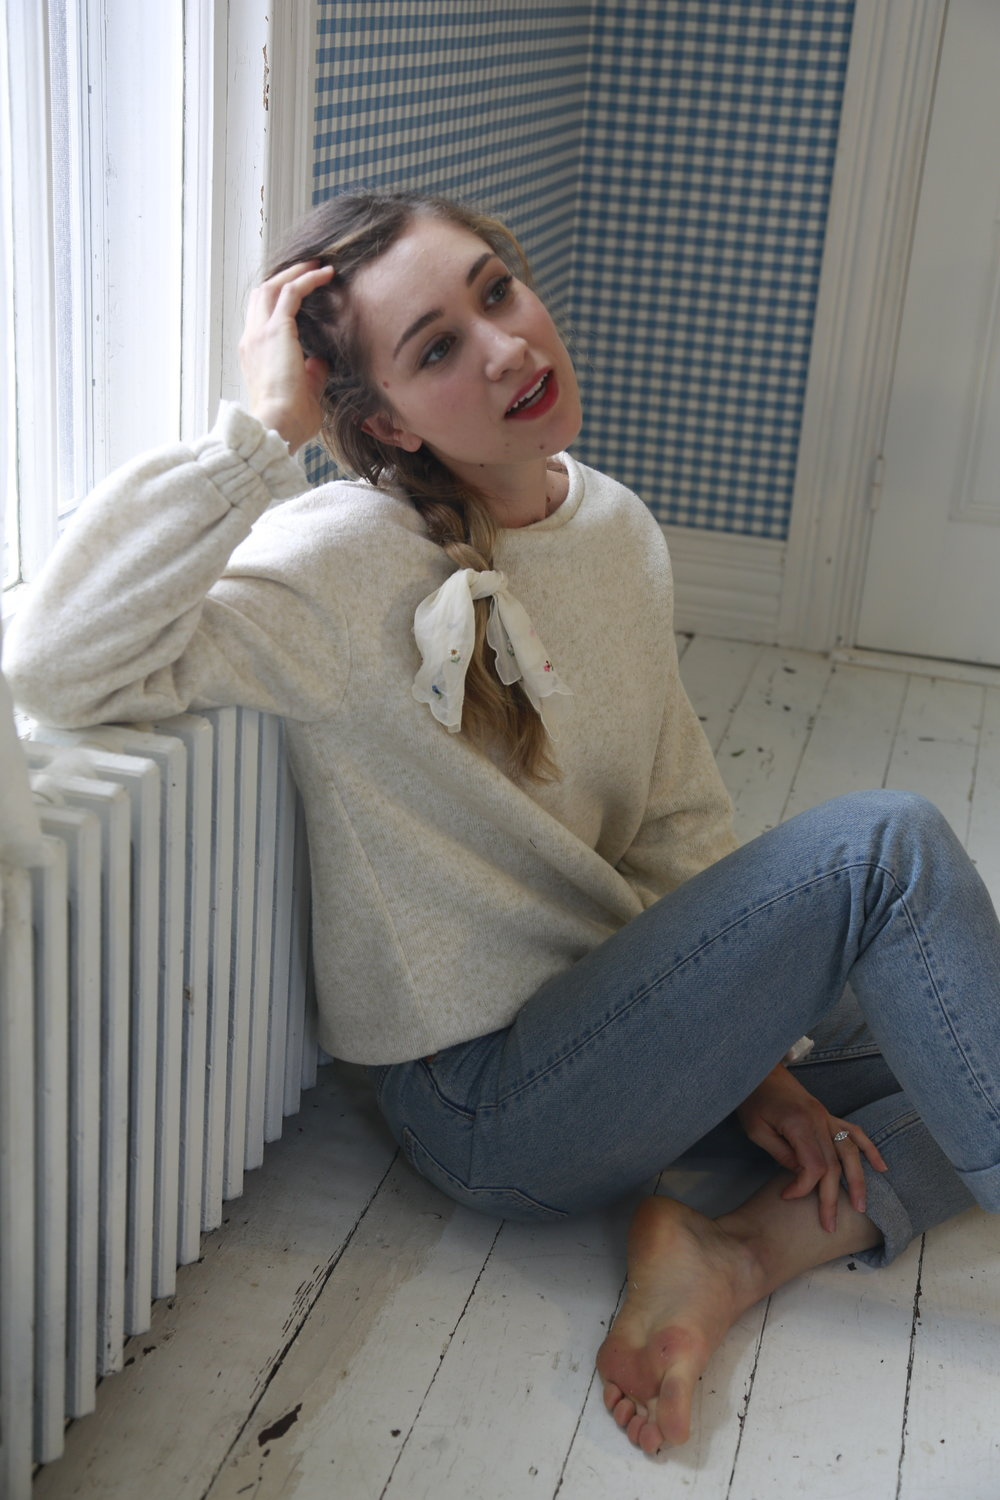 girly-oatmeal-sweatshirt.JPG